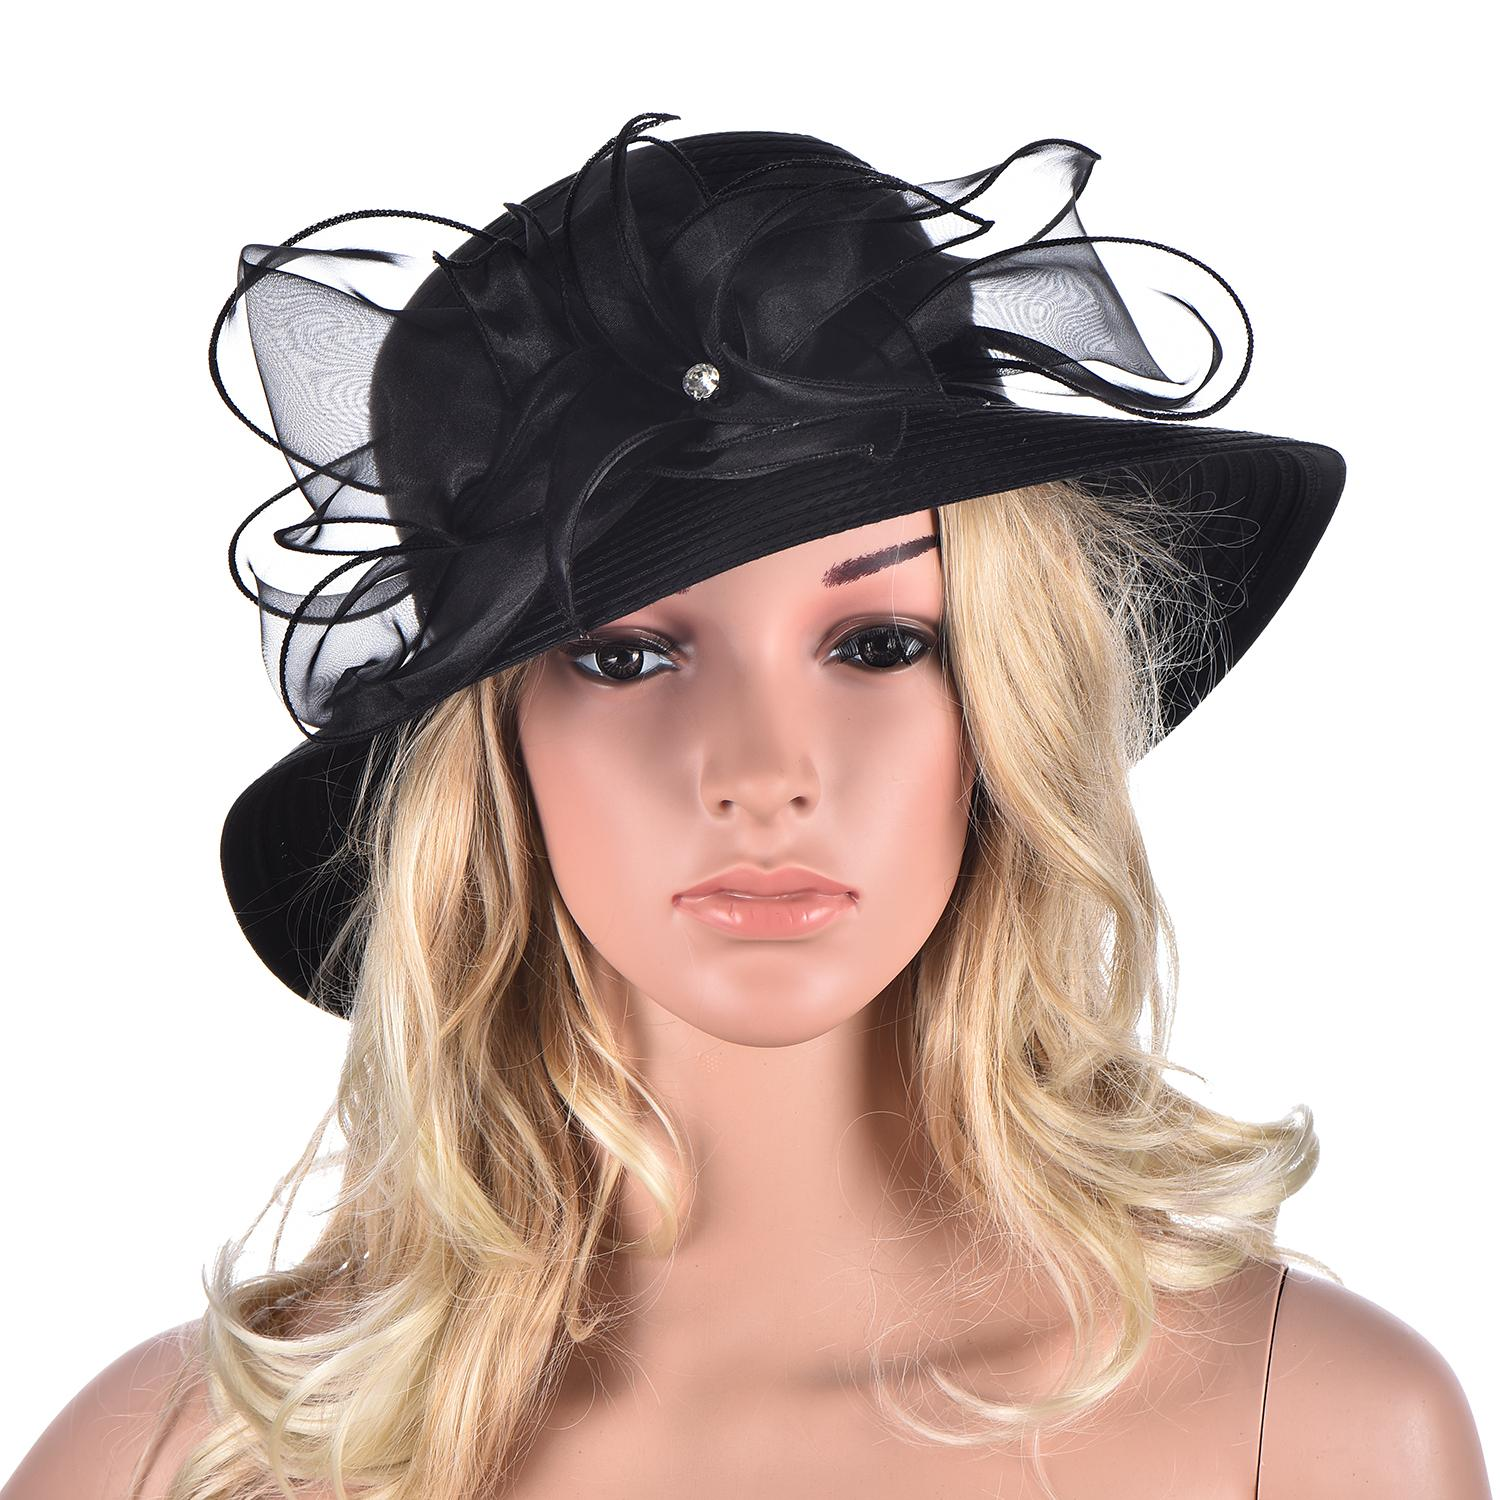 A323 Womens Kentucky Derby Floral Large Brim Église Robe Sun Hat